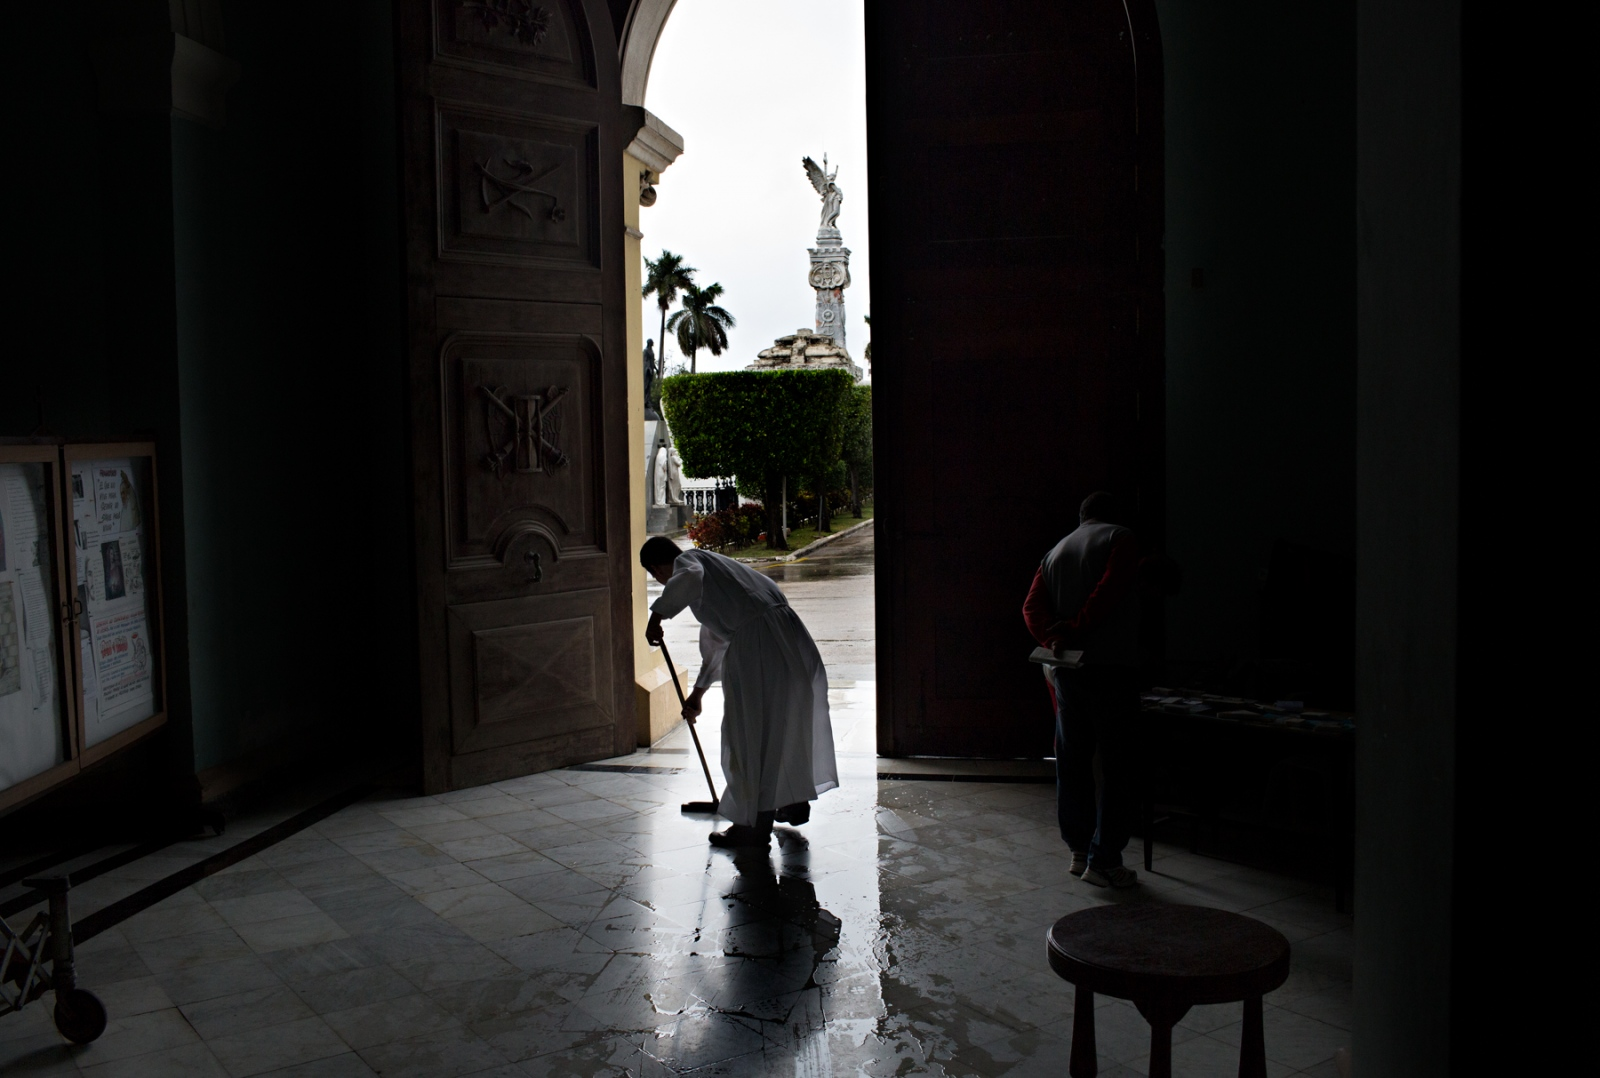 A priest at the Colon Cemetery's parish cleans water parishioners have tracked in before beginning the morning mass. Colon Cemetery is the largest cemetery in Havana.